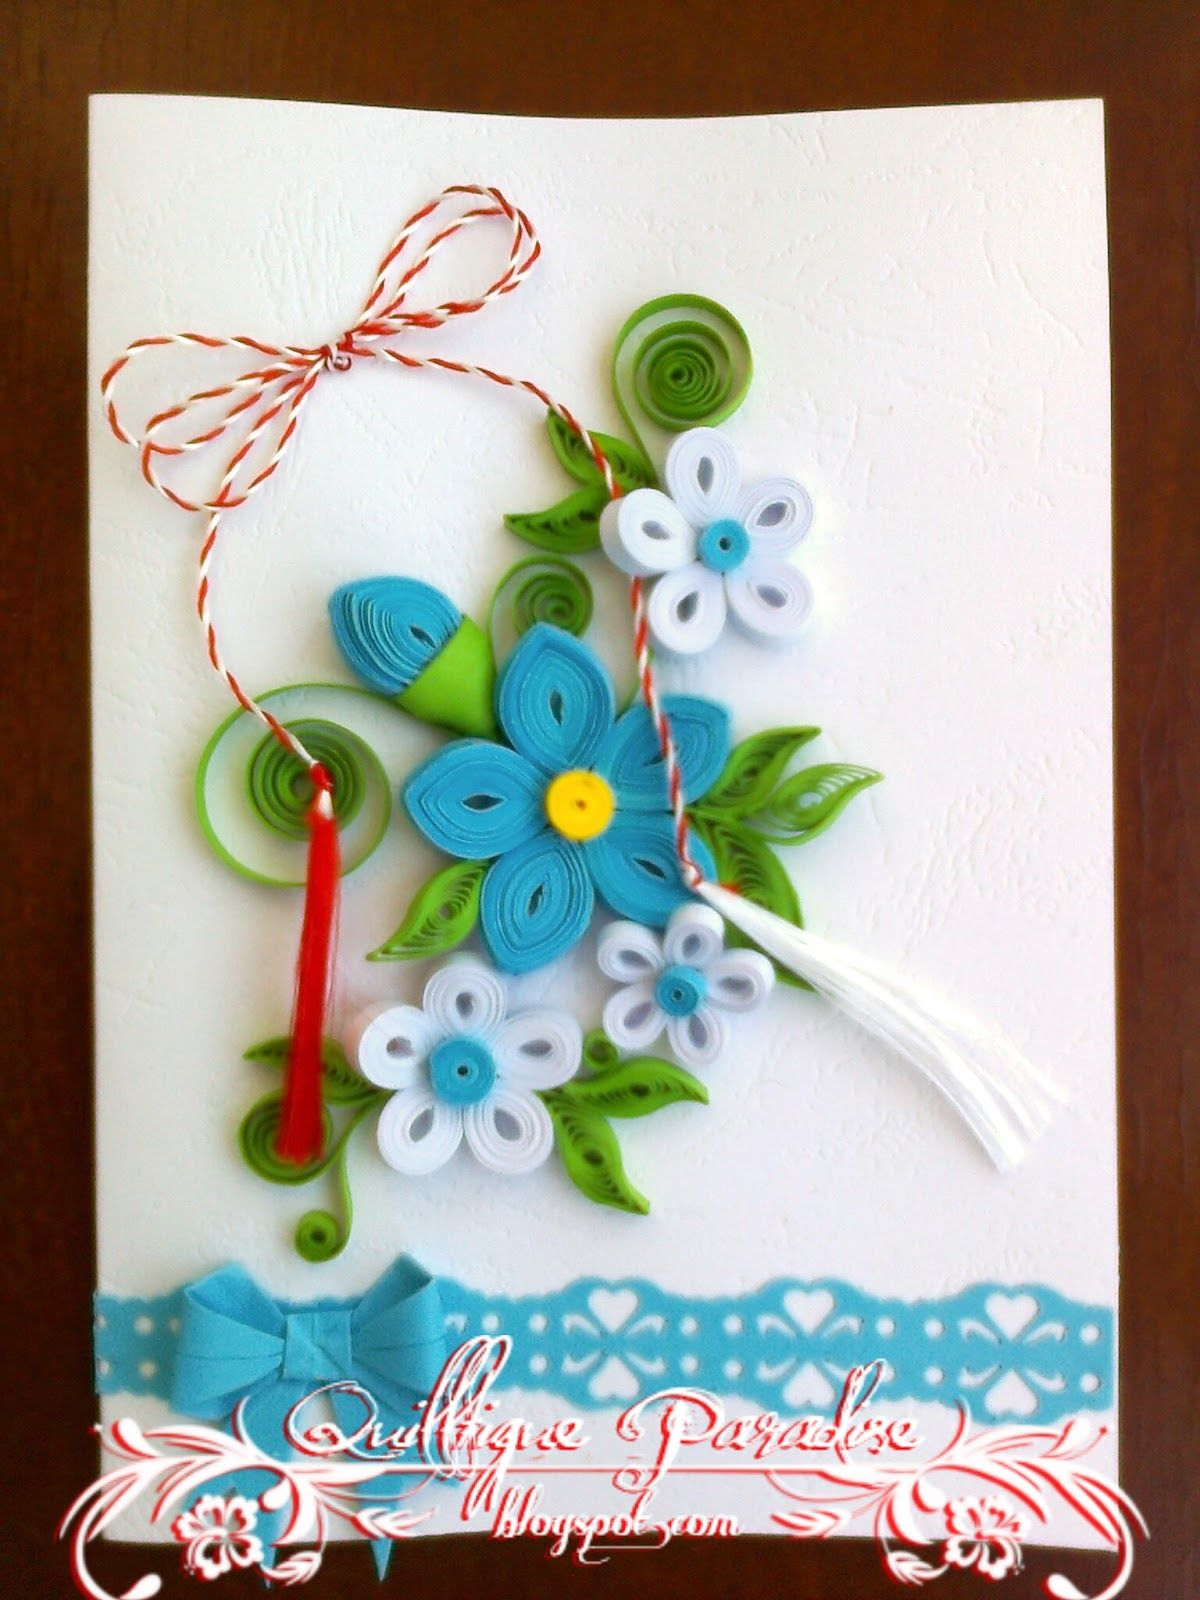 Pin By Jessica On Quilling Card Pinterest Quilling Quilling